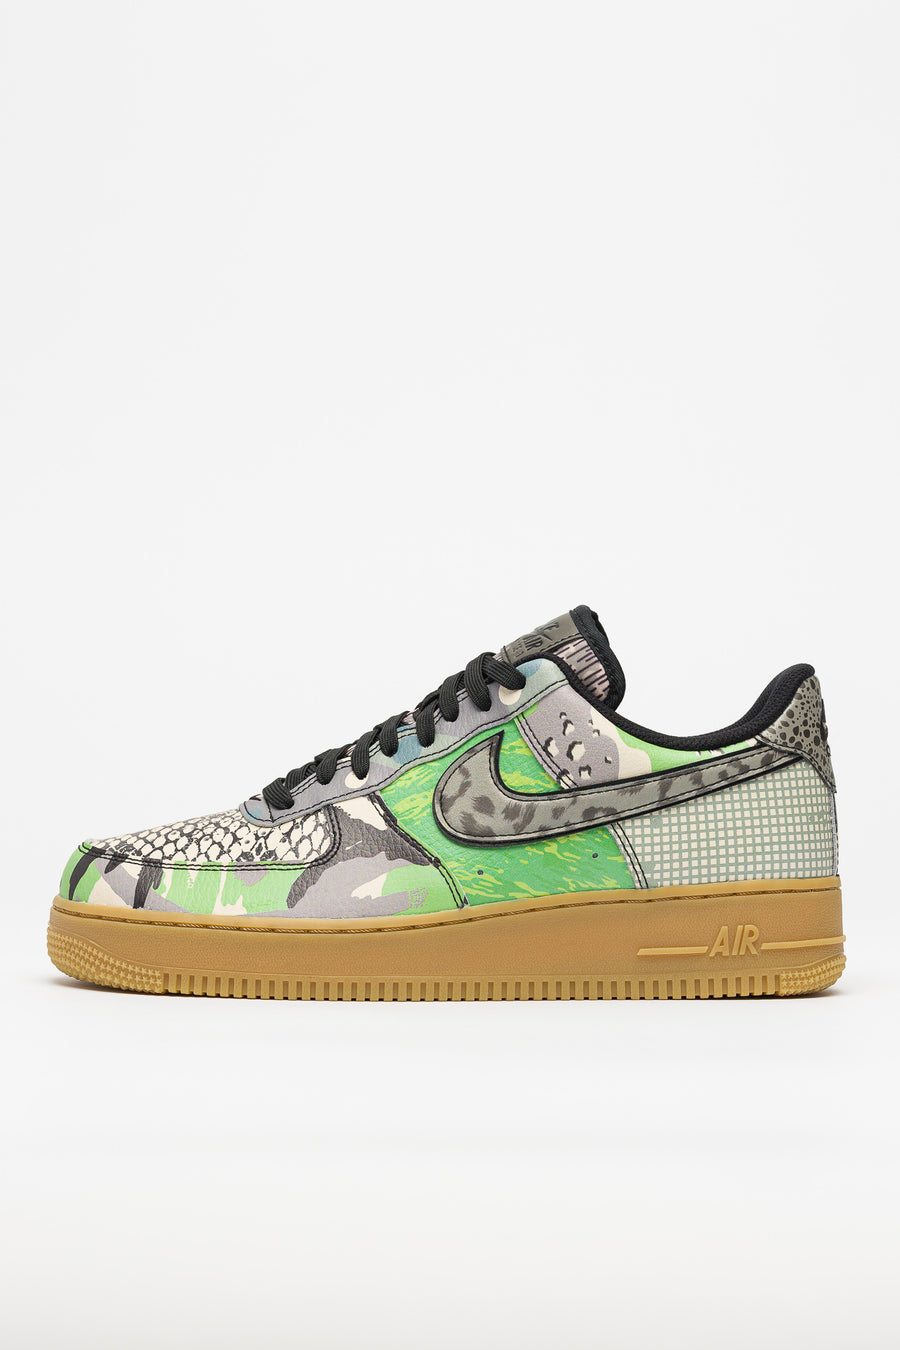 Air Force 1 07 QS in BlackGreen Spark